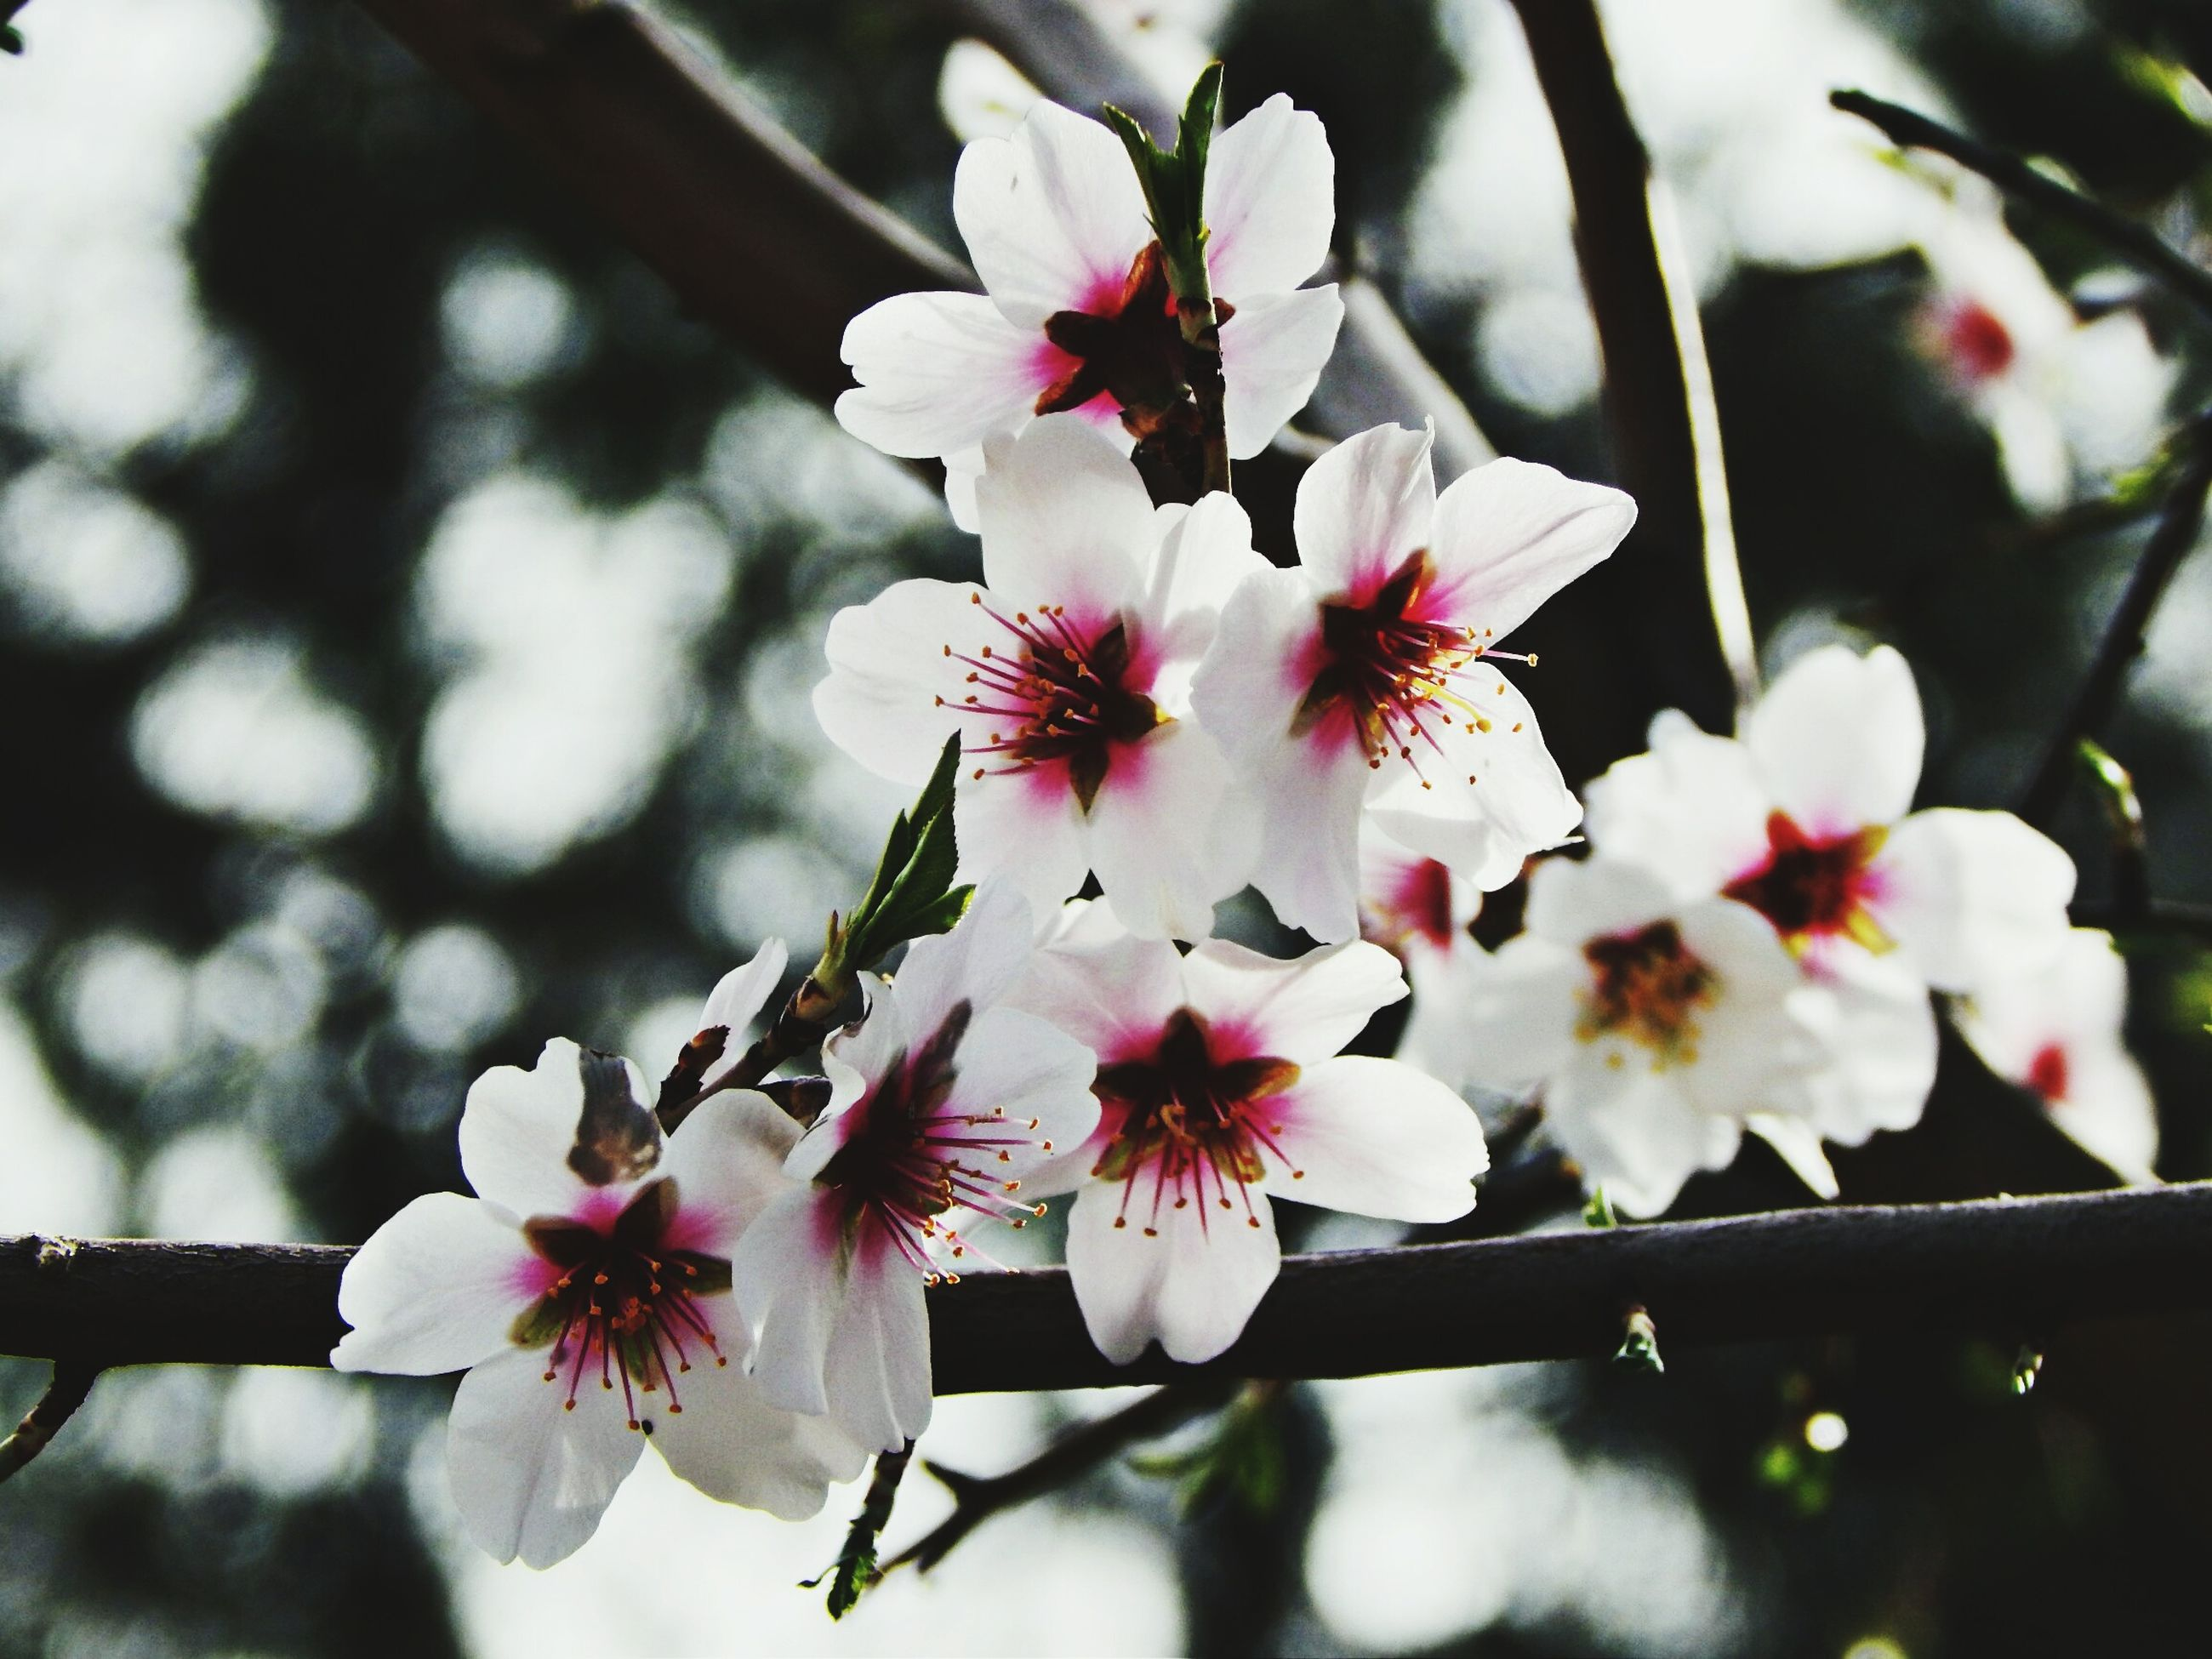 flower, freshness, fragility, pink color, petal, growth, branch, beauty in nature, focus on foreground, cherry blossom, flower head, close-up, tree, nature, blossom, blooming, in bloom, pink, springtime, twig